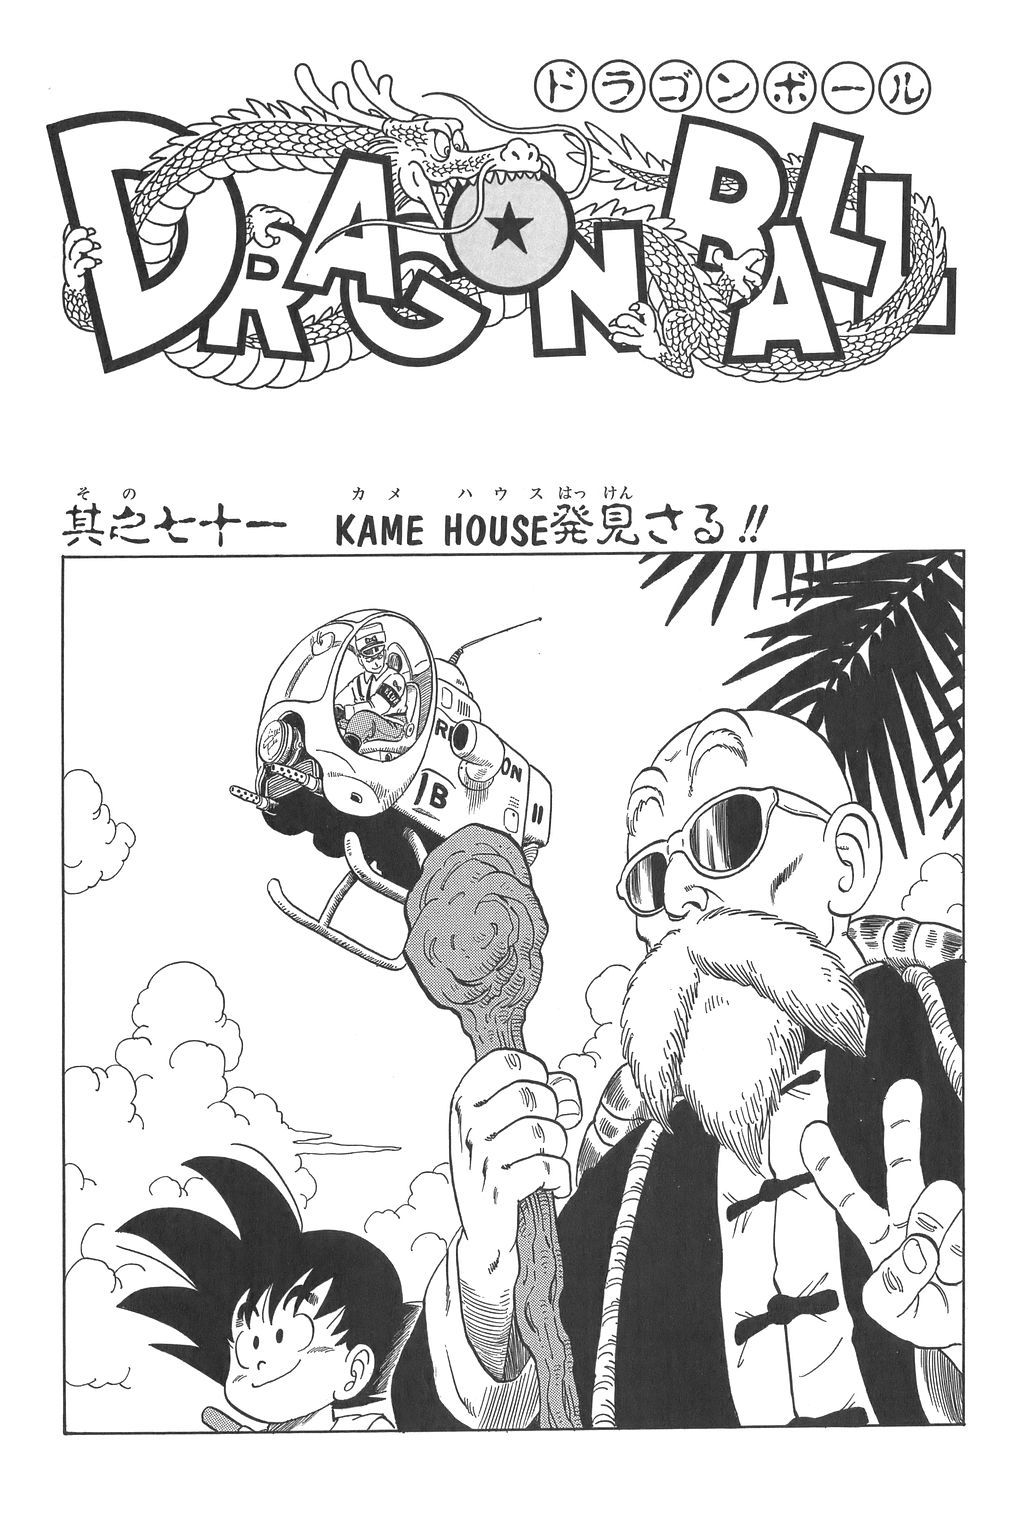 The Turtle is Spotted! in 2020 Dragon ball art, Dragon